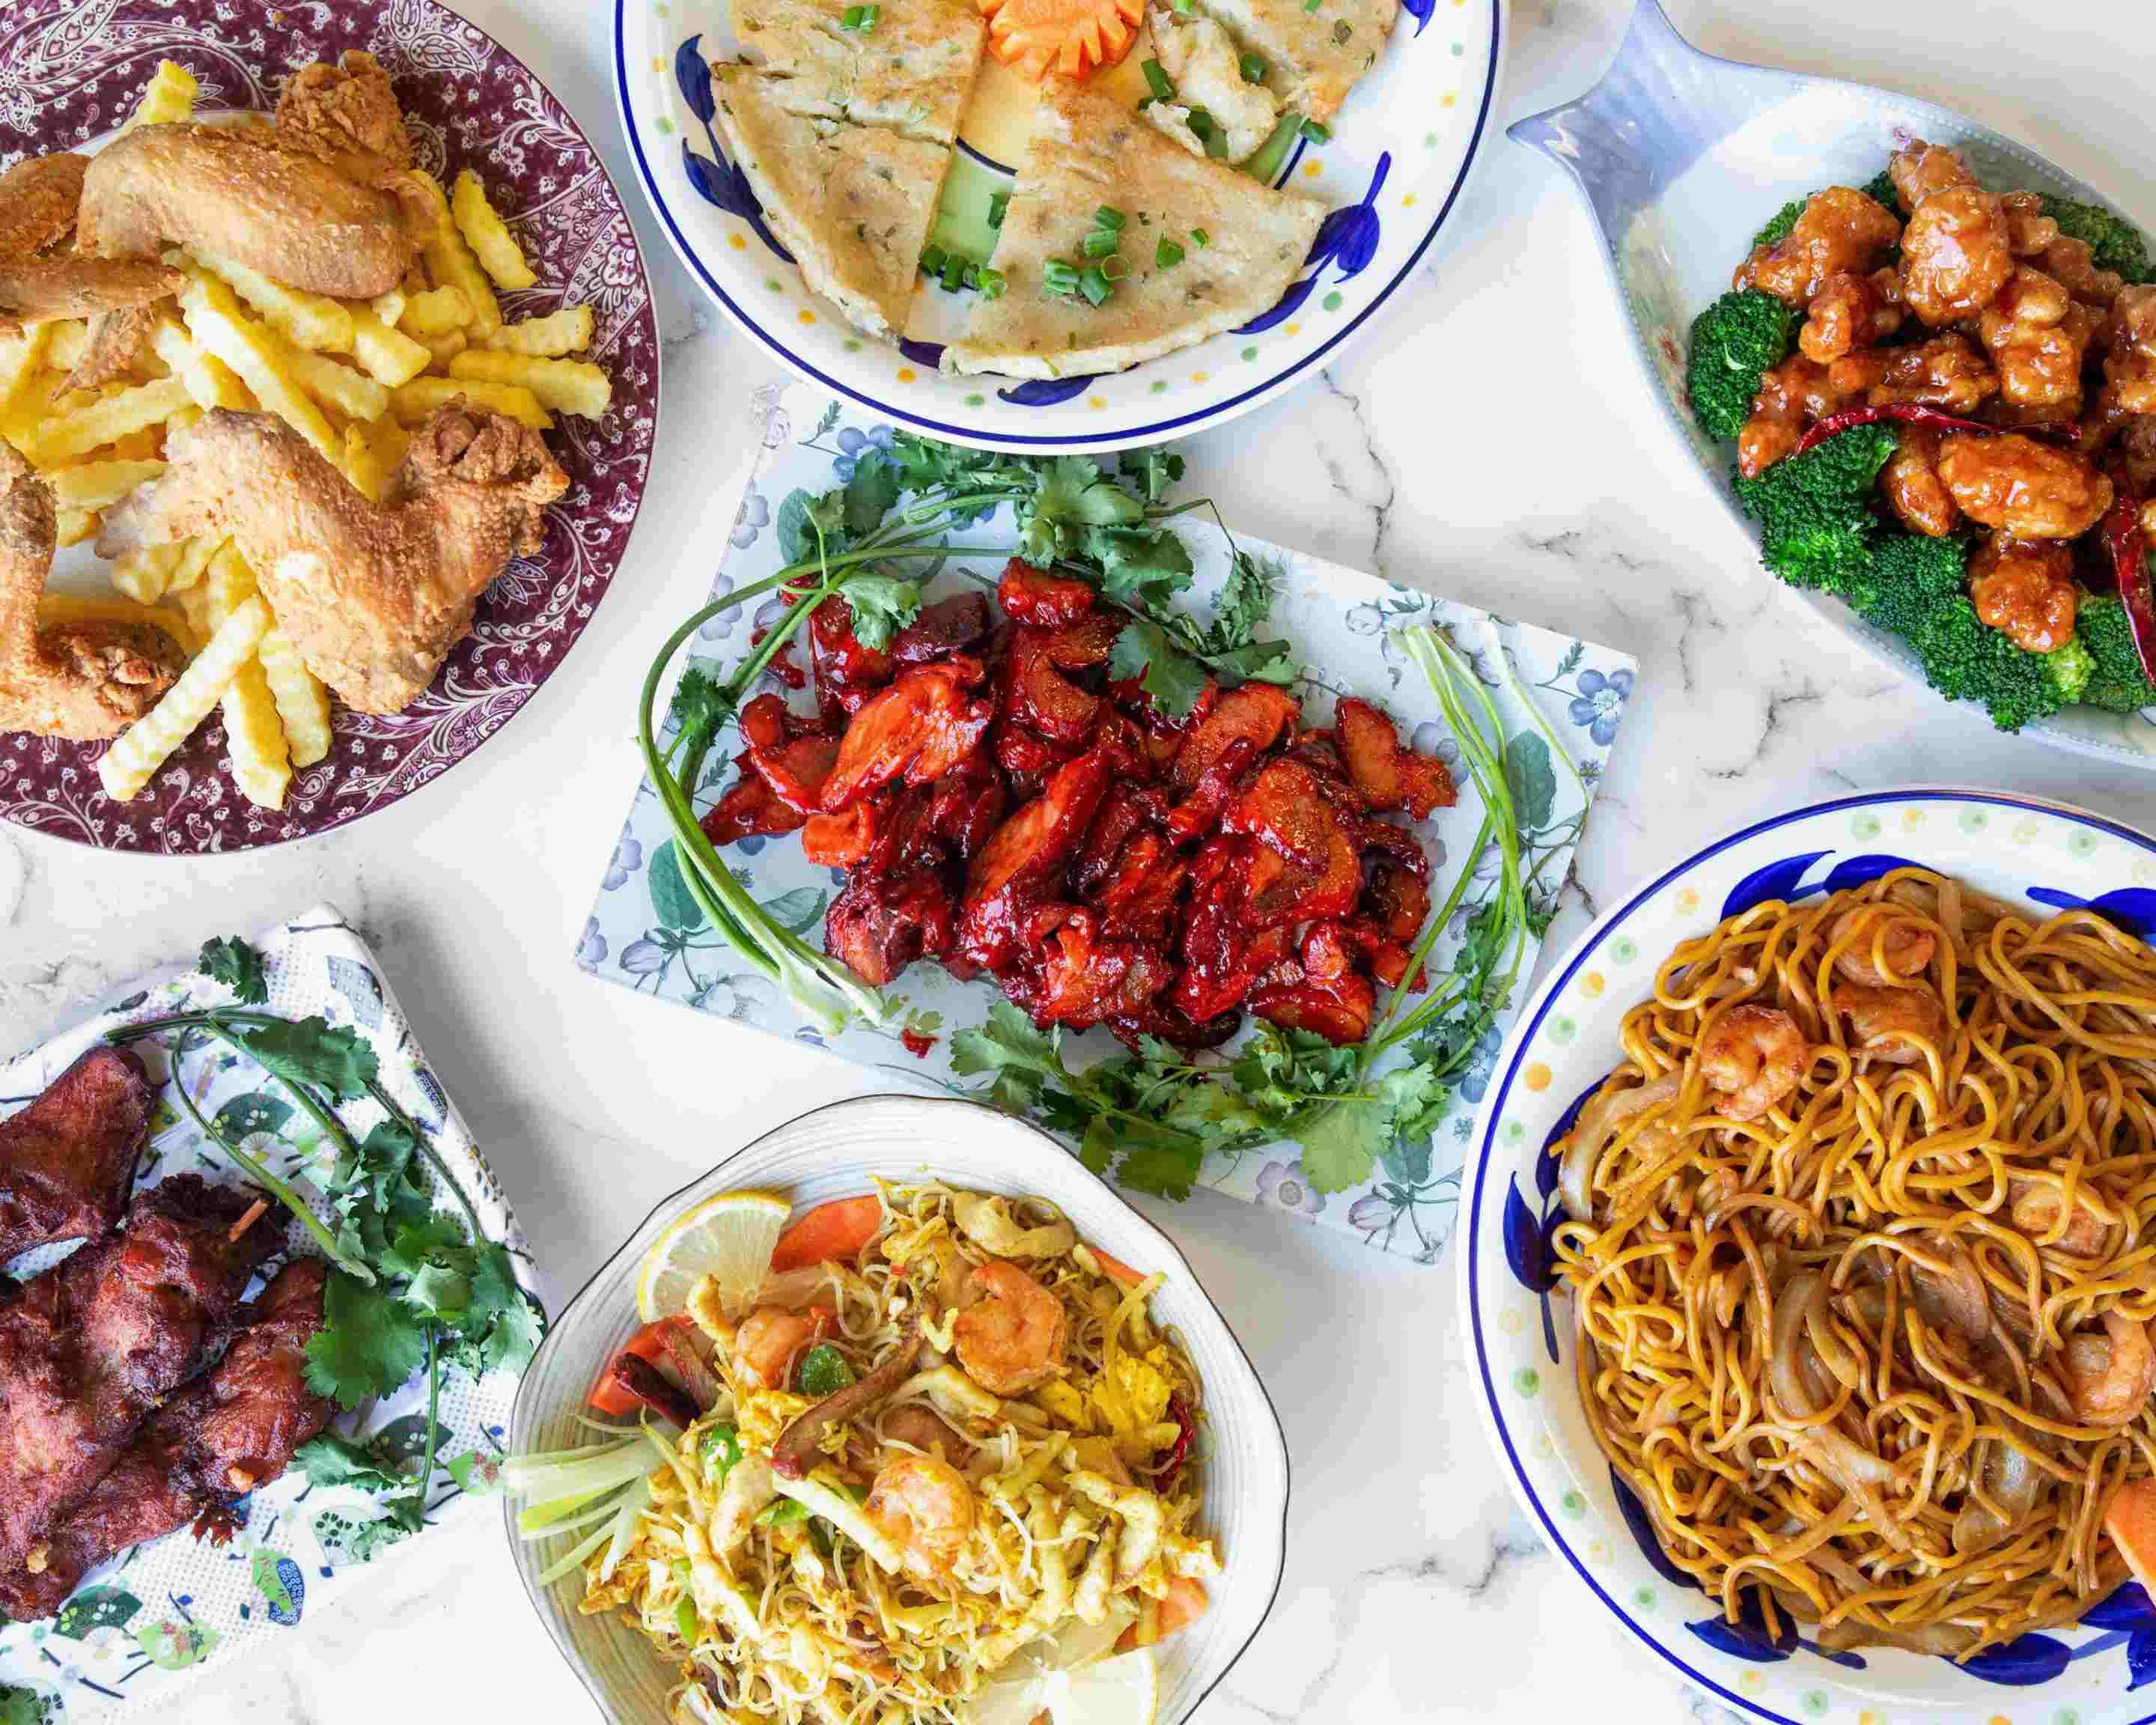 order new hop hing inc delivery online  new jersey  menu